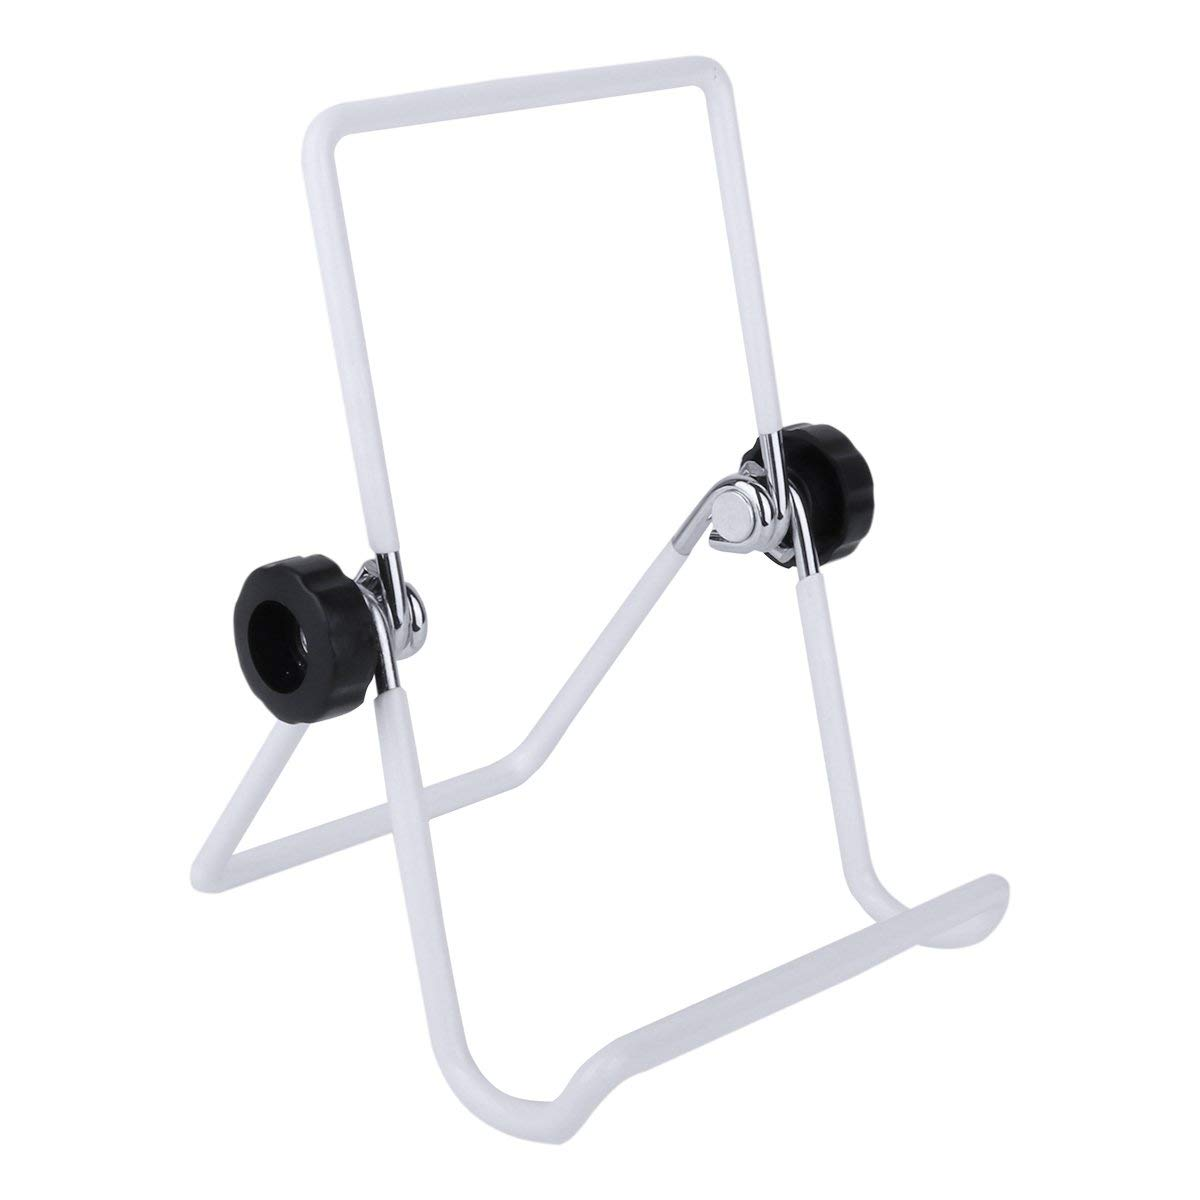 Freebily Sprouting Stands, Stainless Steel Foldable and Non-slip Scaffolds Sprouting Lid Stands Kit for Mason Jar and Phone iPad Tablet Stand 1 Pack One Size